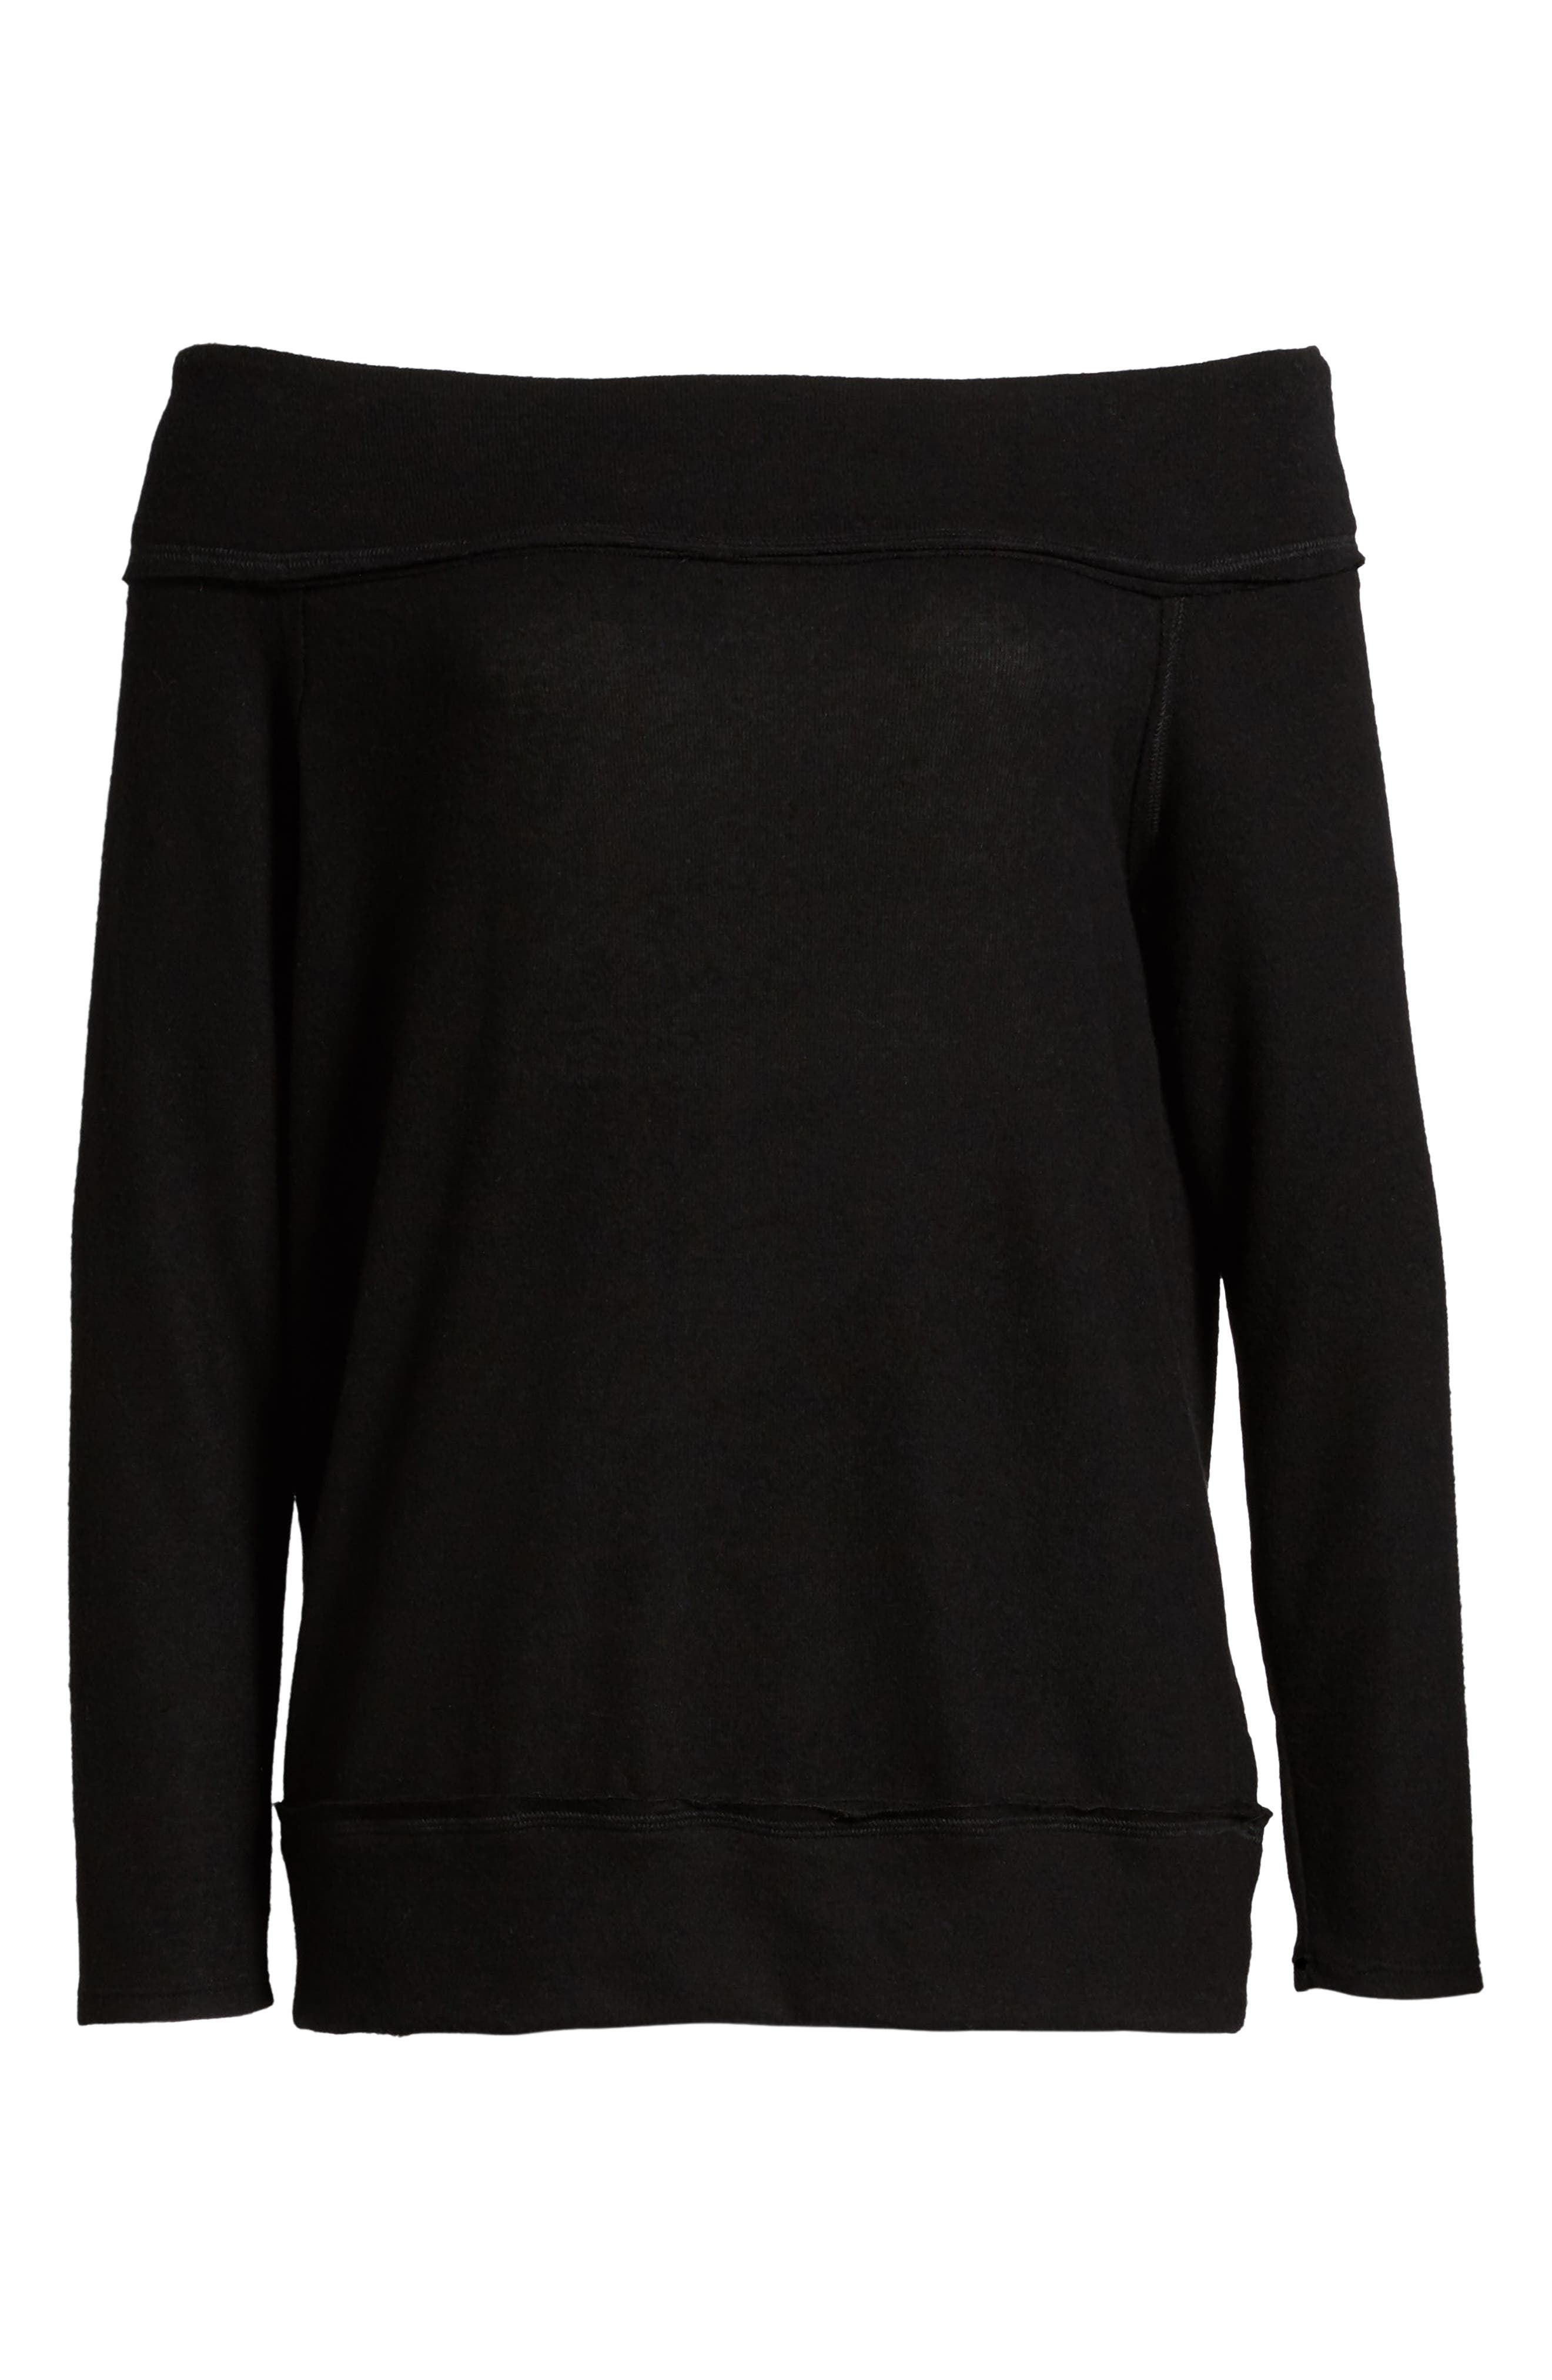 GIBSON, x Living in Yellow Mary Fleece Off the Shoulder Top, Alternate thumbnail 6, color, BLACK